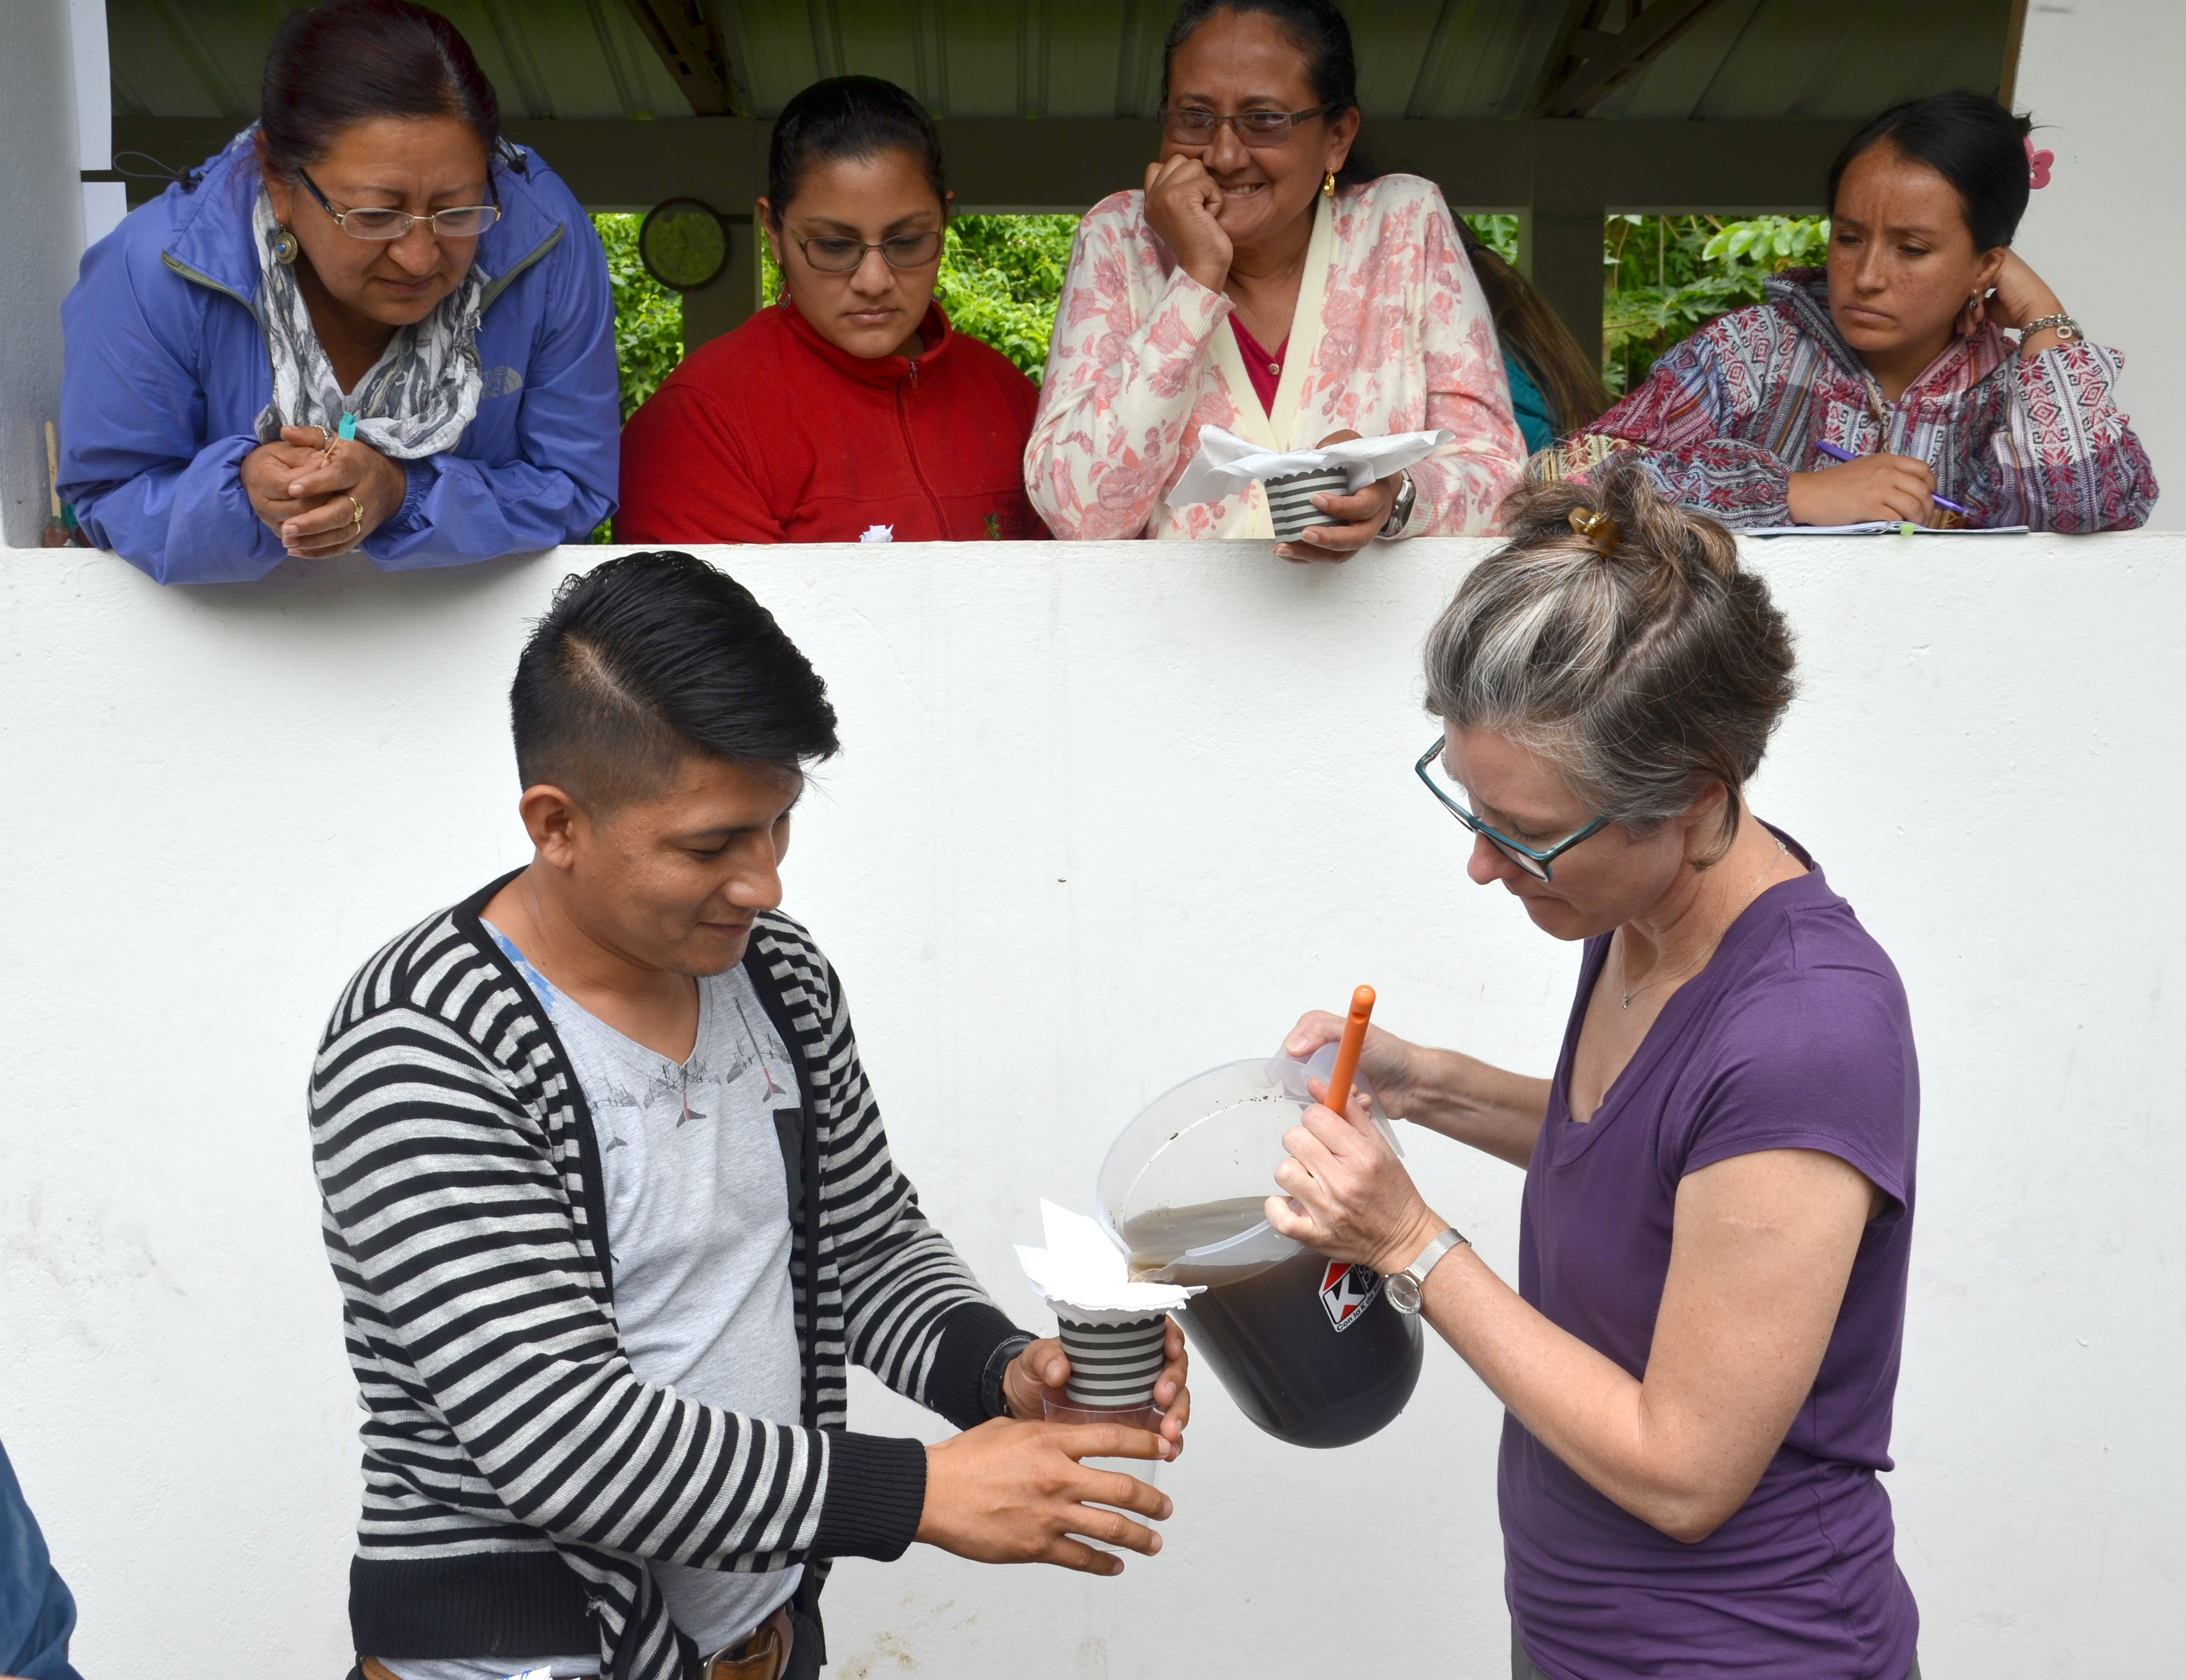 KC Busch works with teachers in the Galapagos Islands as they perform a water filtration experiment